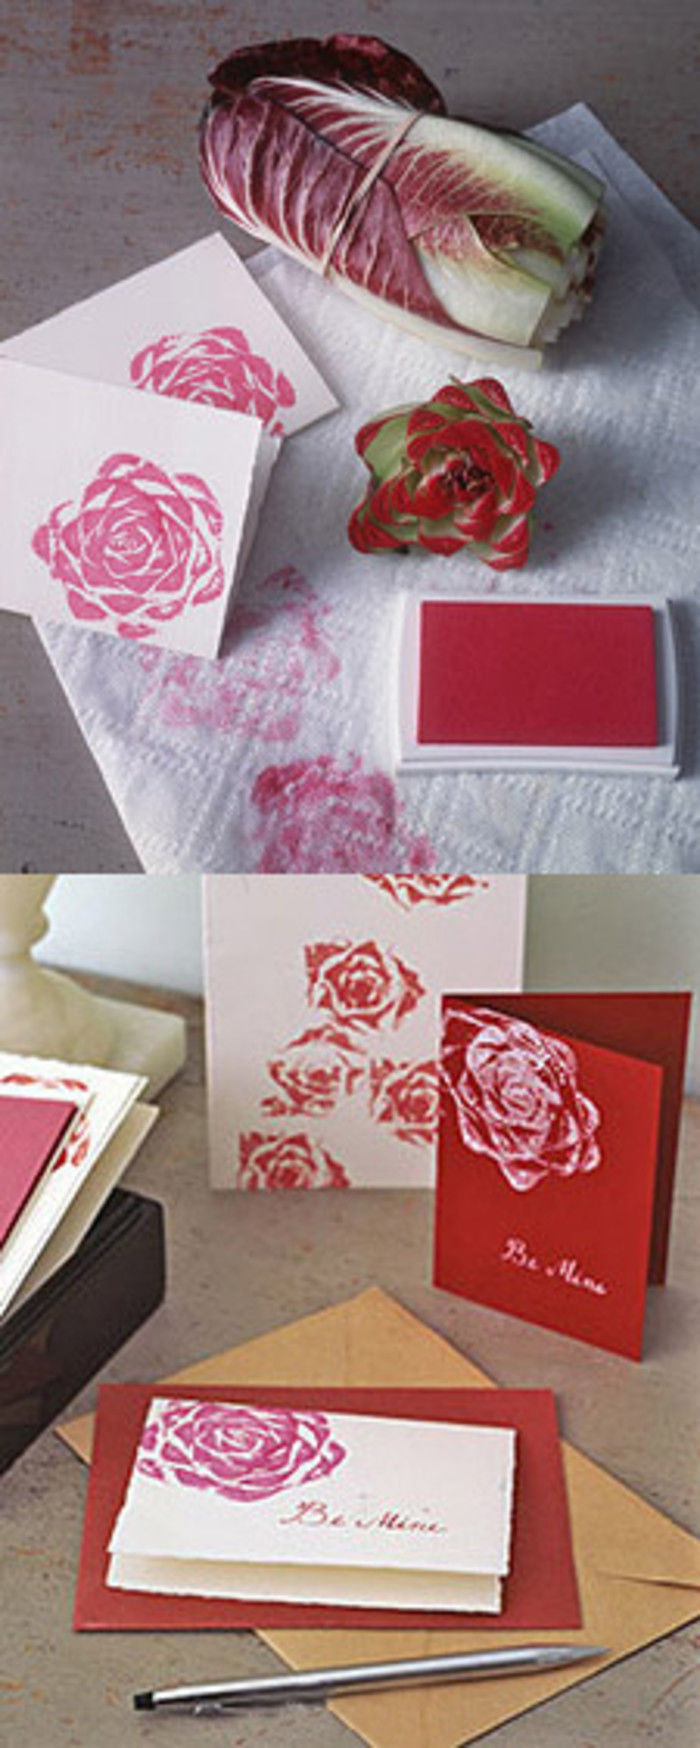 diy flower card pictures photos and images for facebook